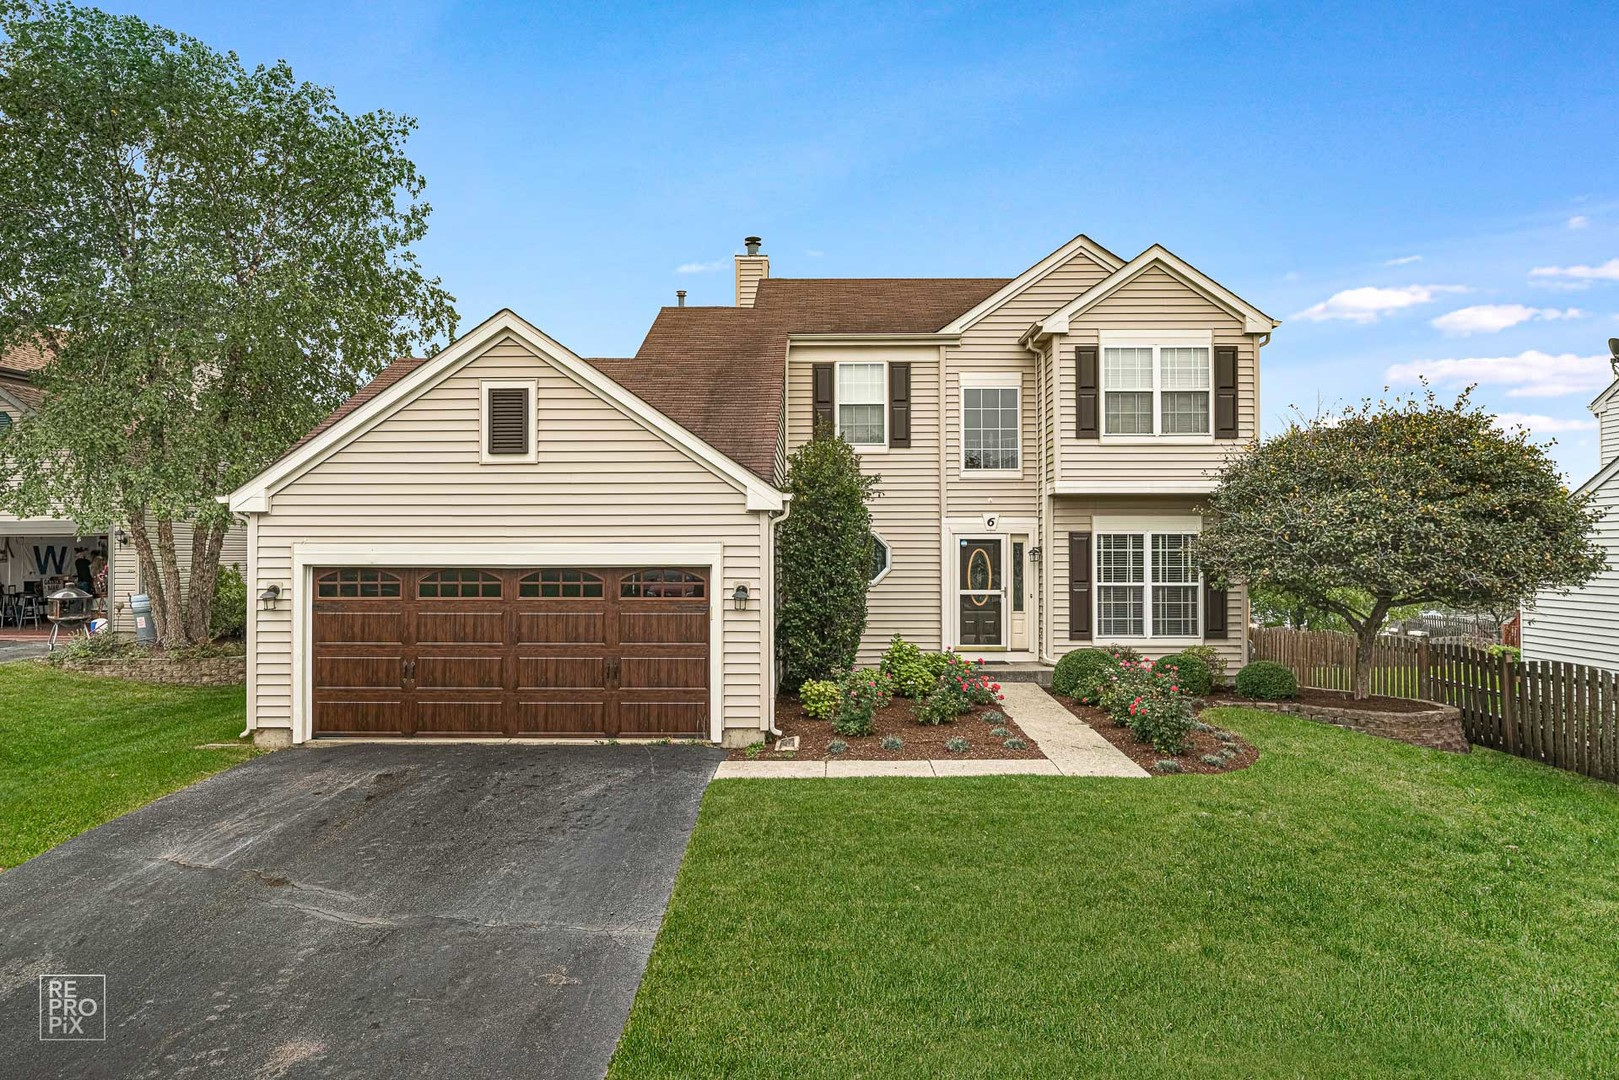 Photo for 6 Elizabeth Court, Lake In The Hills, IL 60156 (MLS # 10885511)